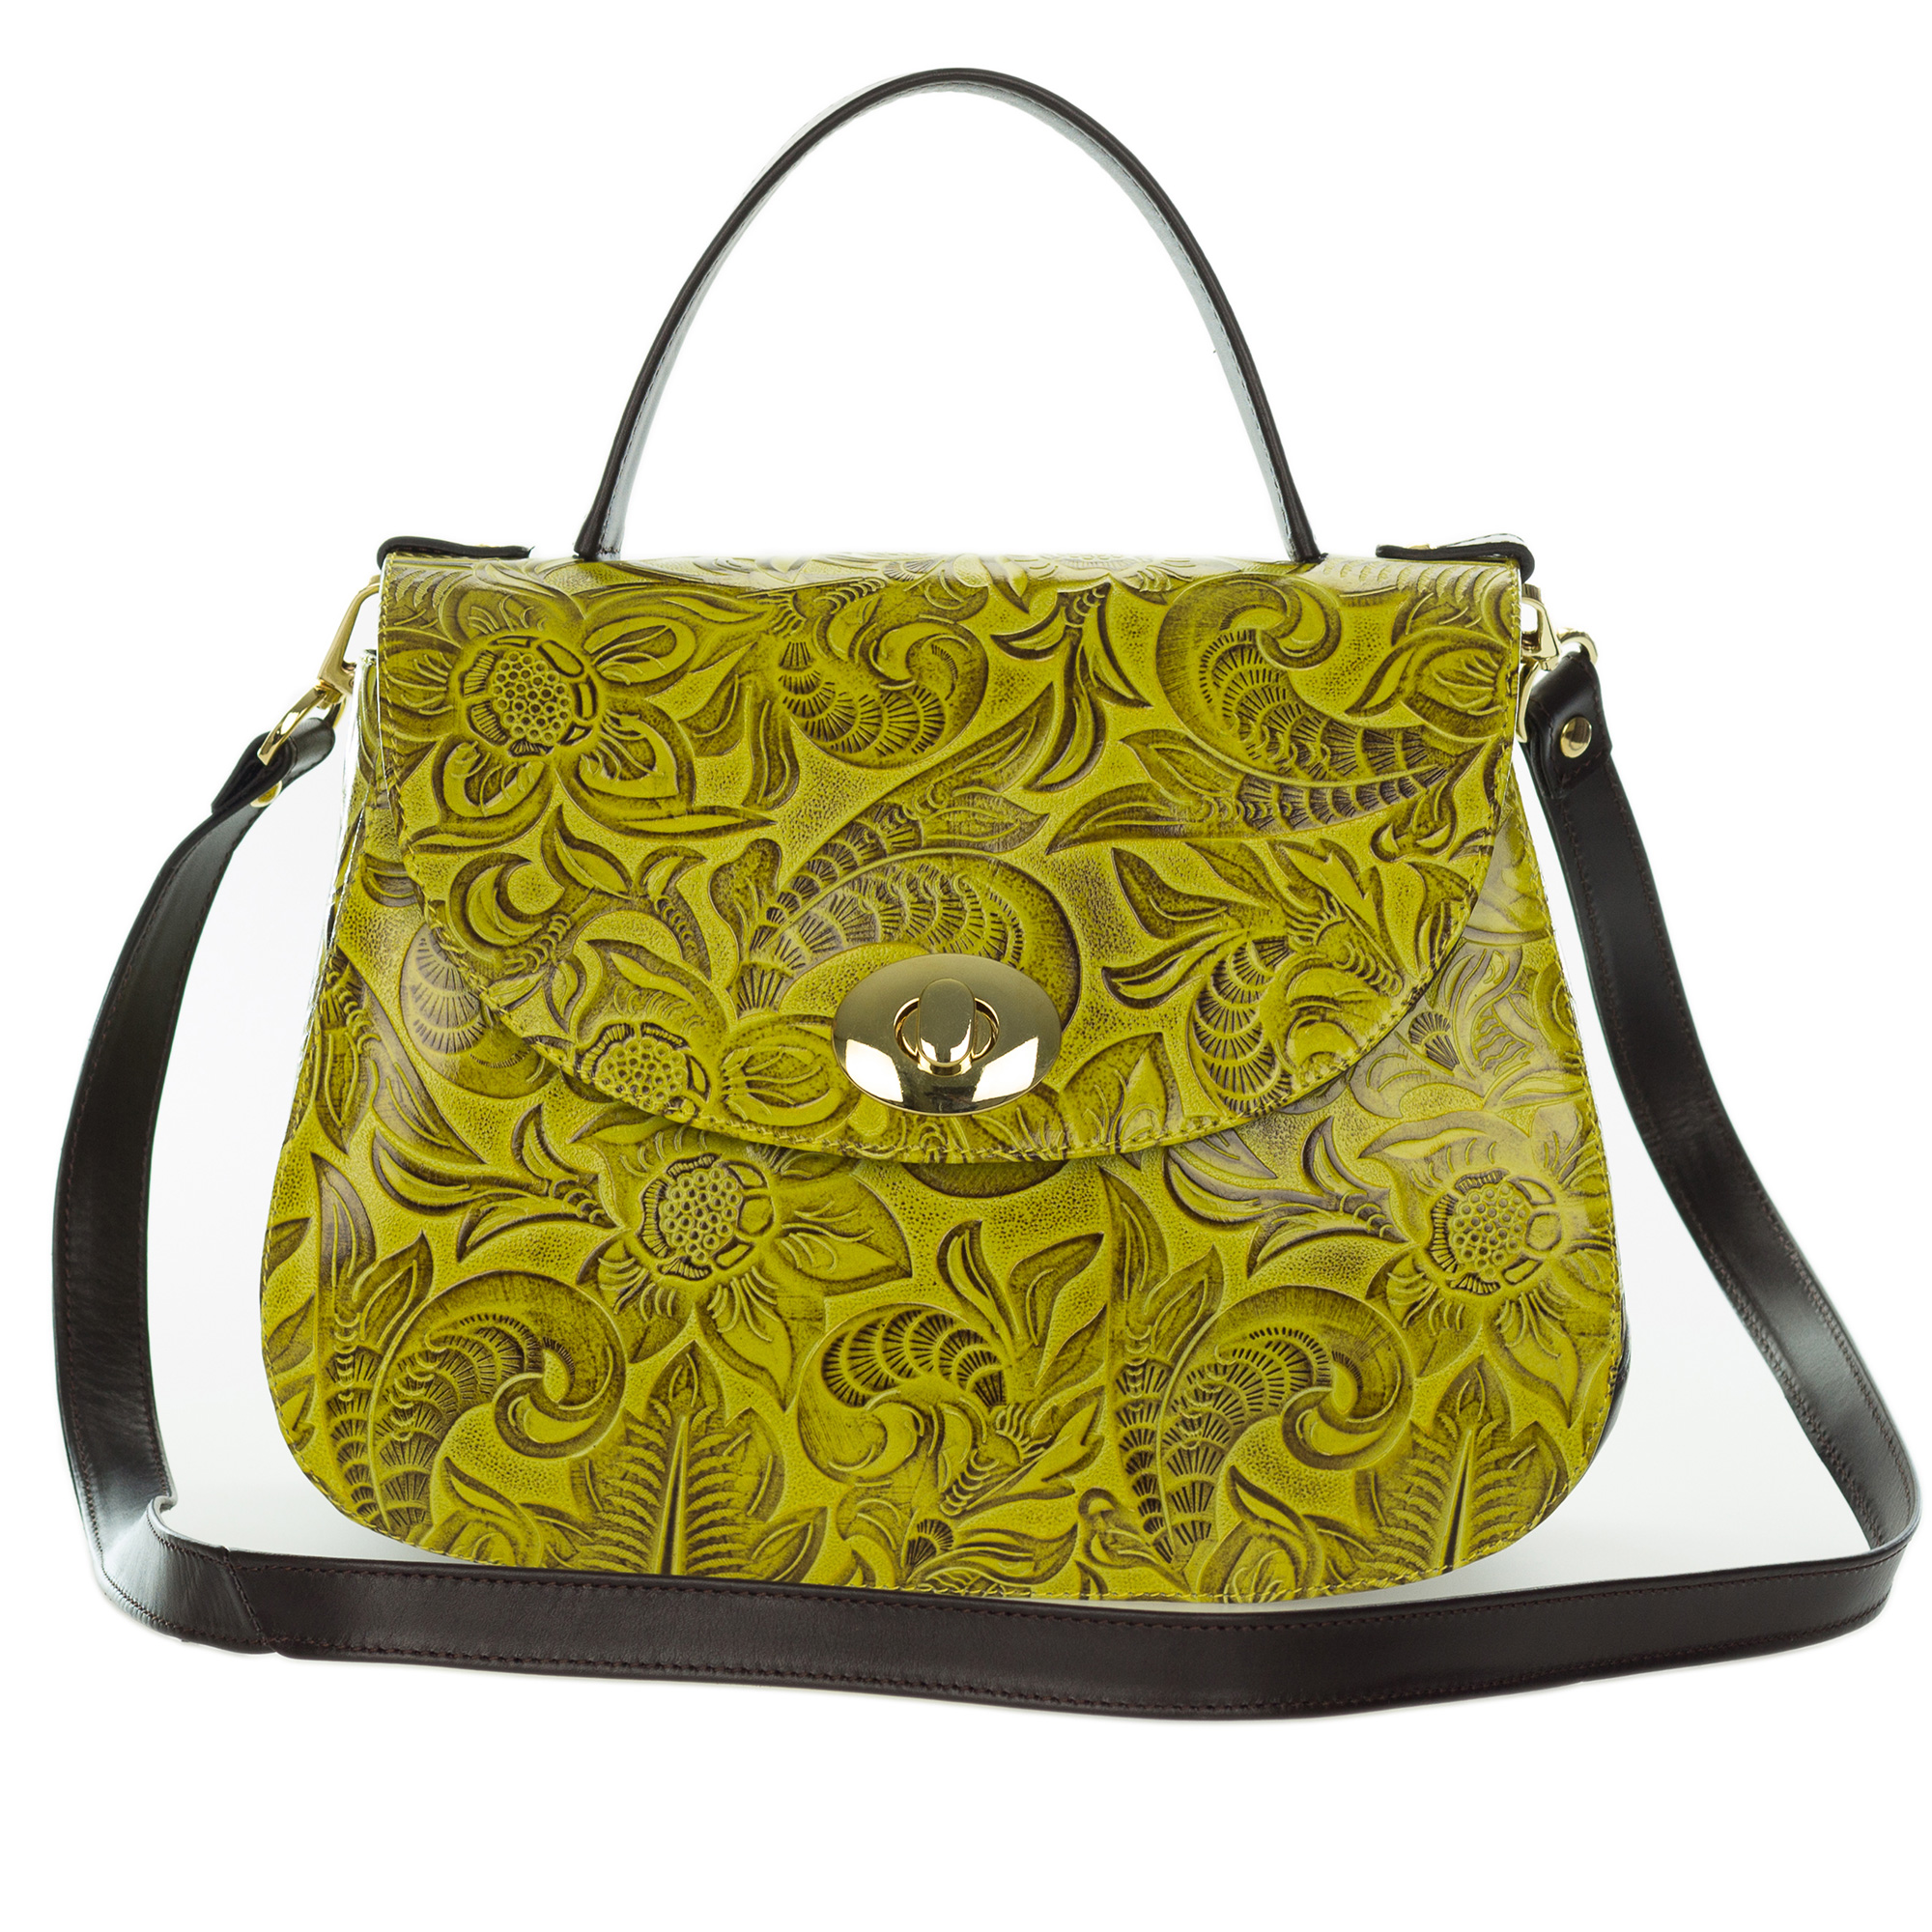 Giordano Italian Made Yellow Floral Embossed Leather Handbag